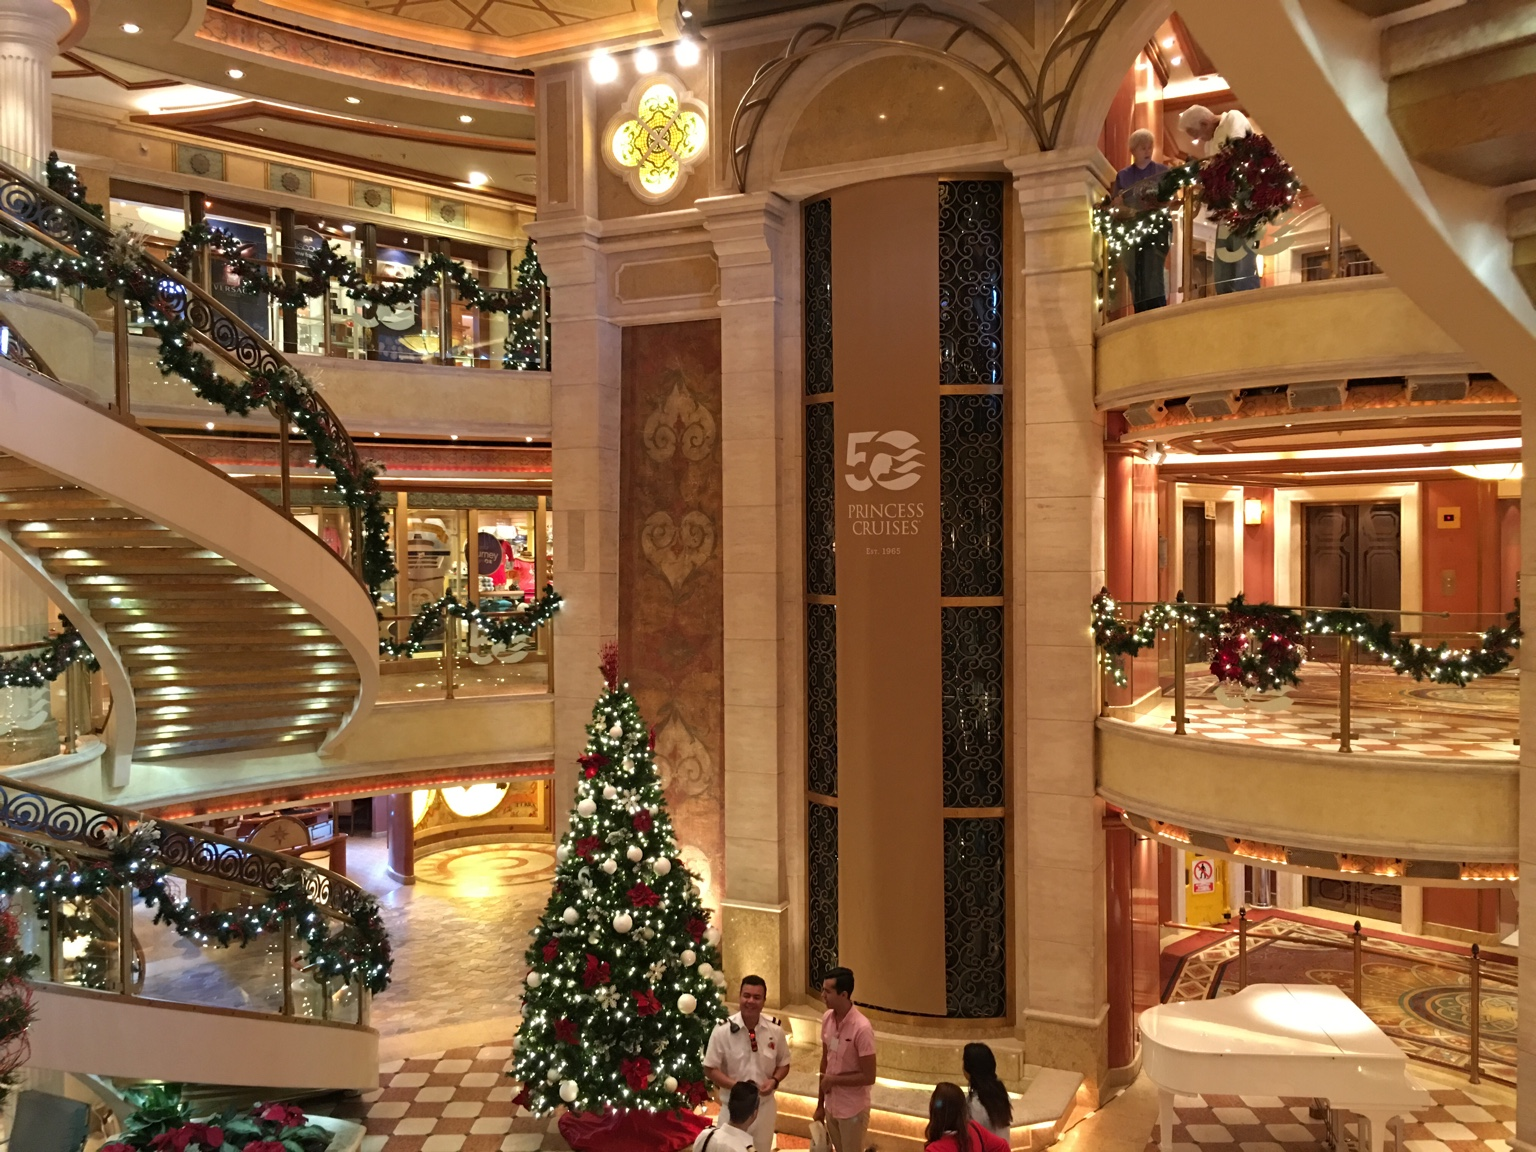 Image result for images of christmas on sapphire princess cruise ship